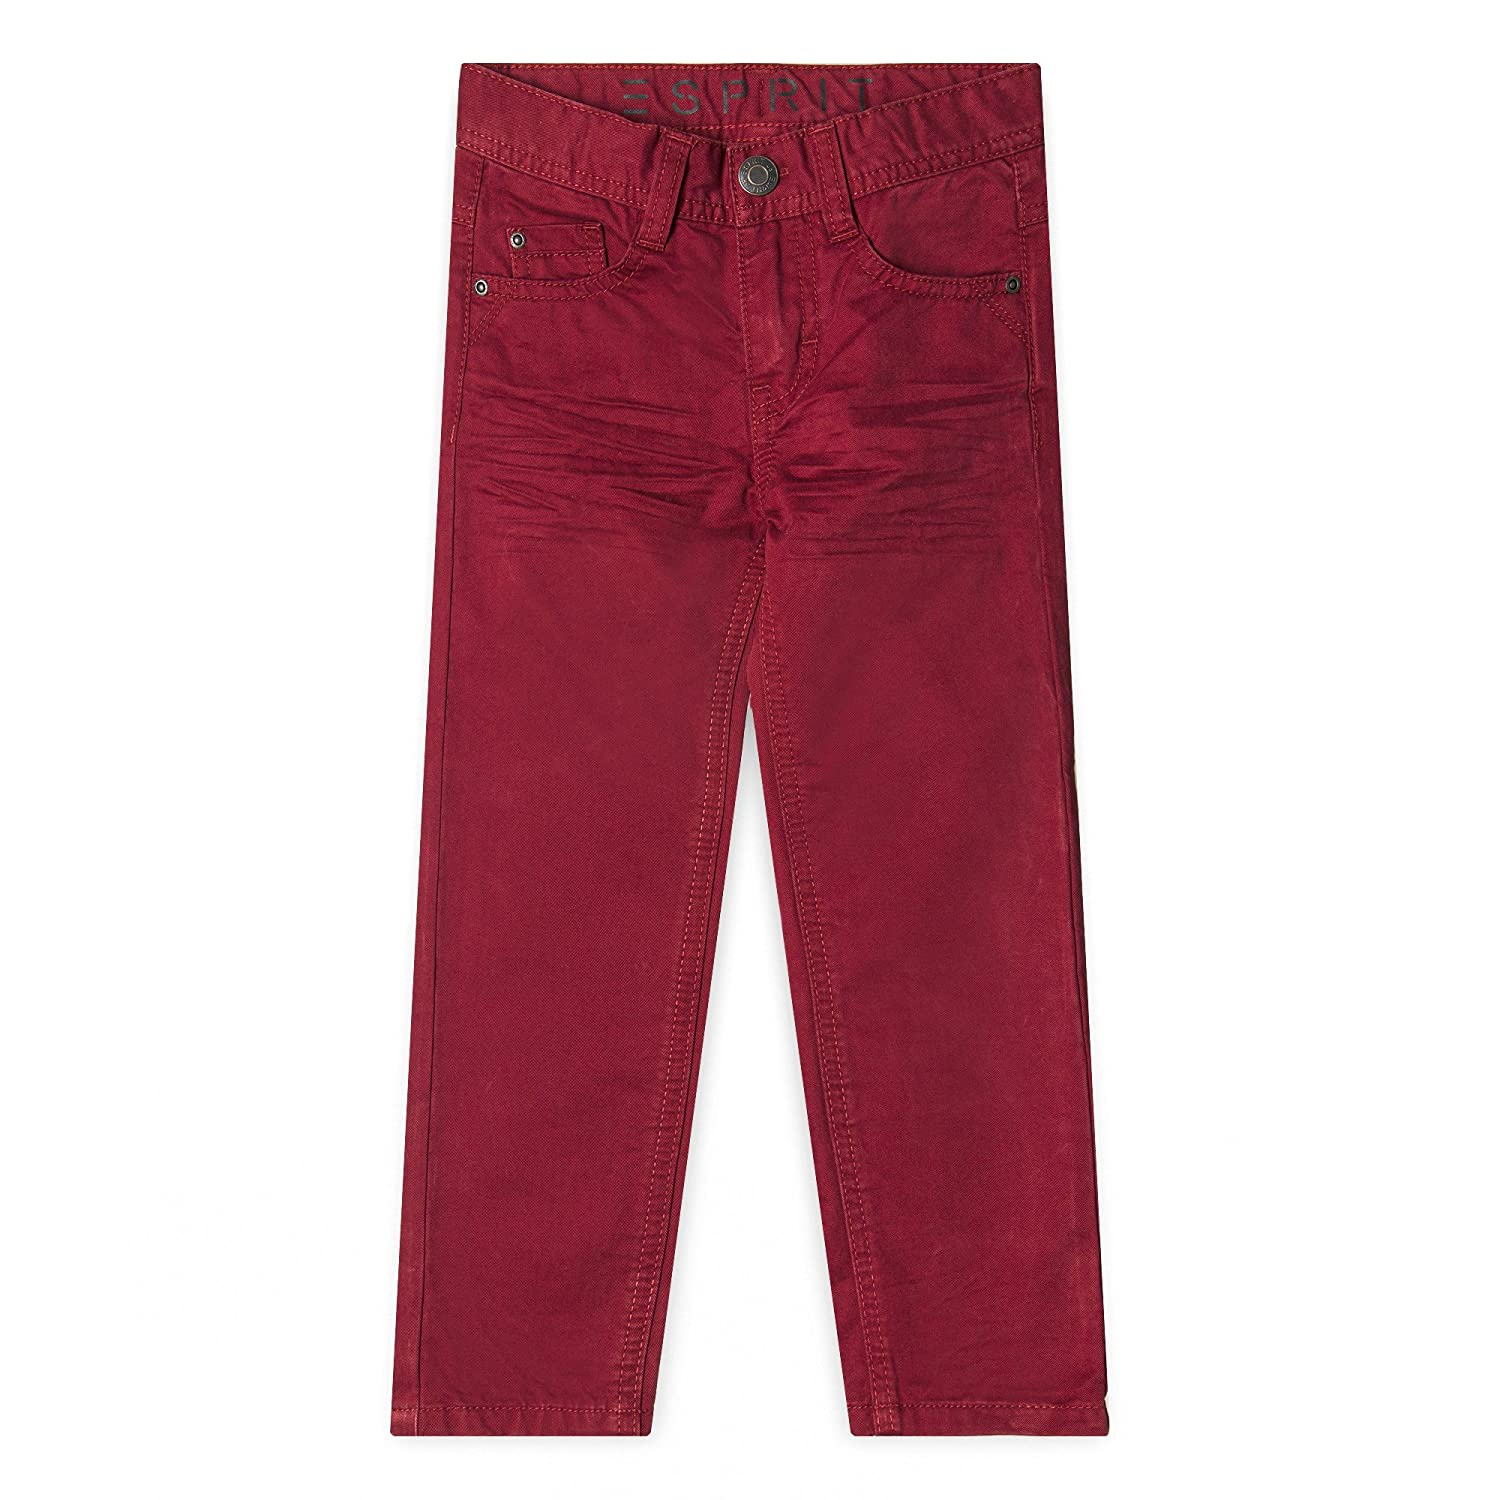 ESPRIT Kids Hose for Boy, Pantaloni Bambino RM2200407